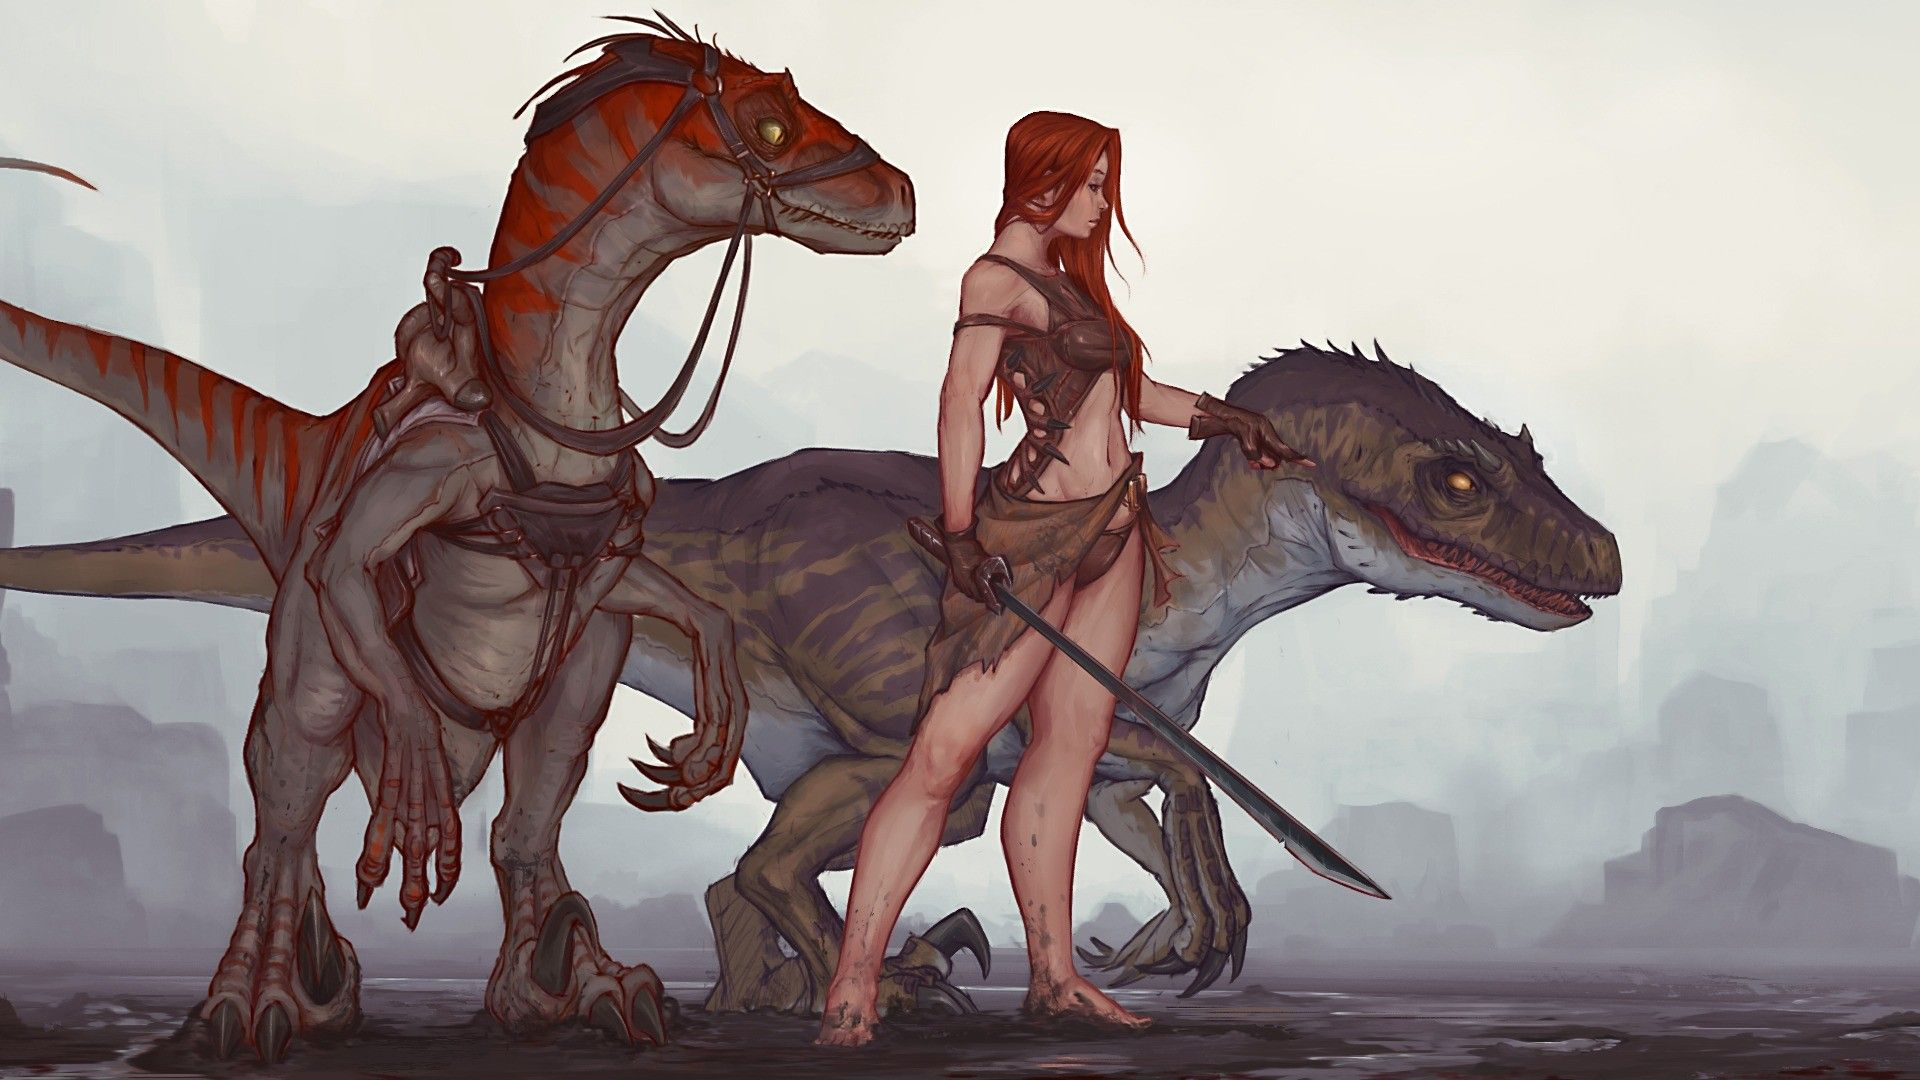 Woman with raptors (inspired by Ark: Survival Evolved